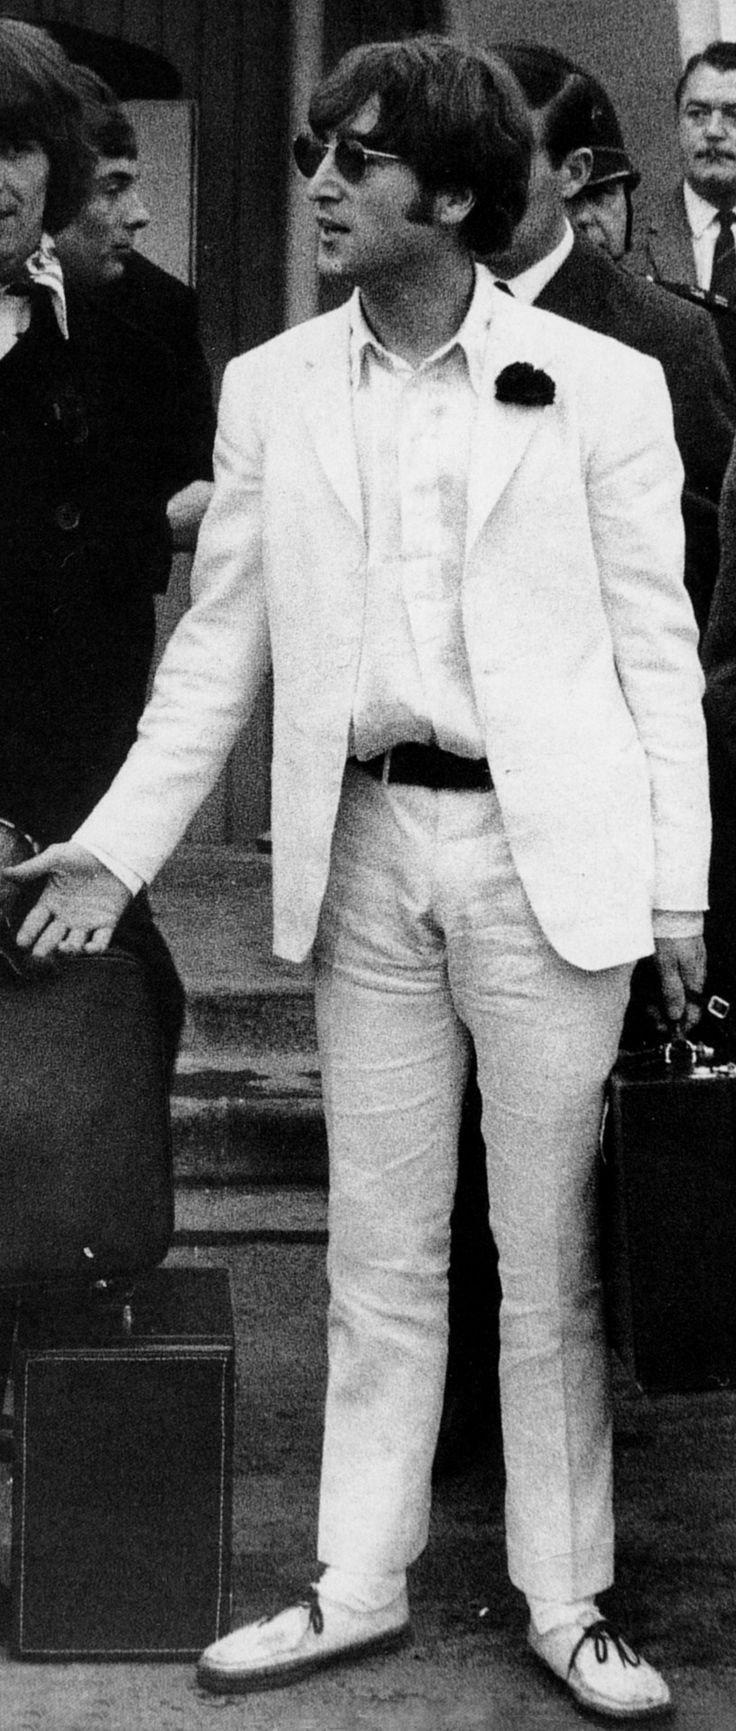 """John Lennon, 1966. """"We've got this gift of love, but love is like a precious plant. You can't just accept it and leave it in the cupboard or just think it's going to get on by itself. You've got to keep watering it. You've got to really look after it and nurture it."""""""